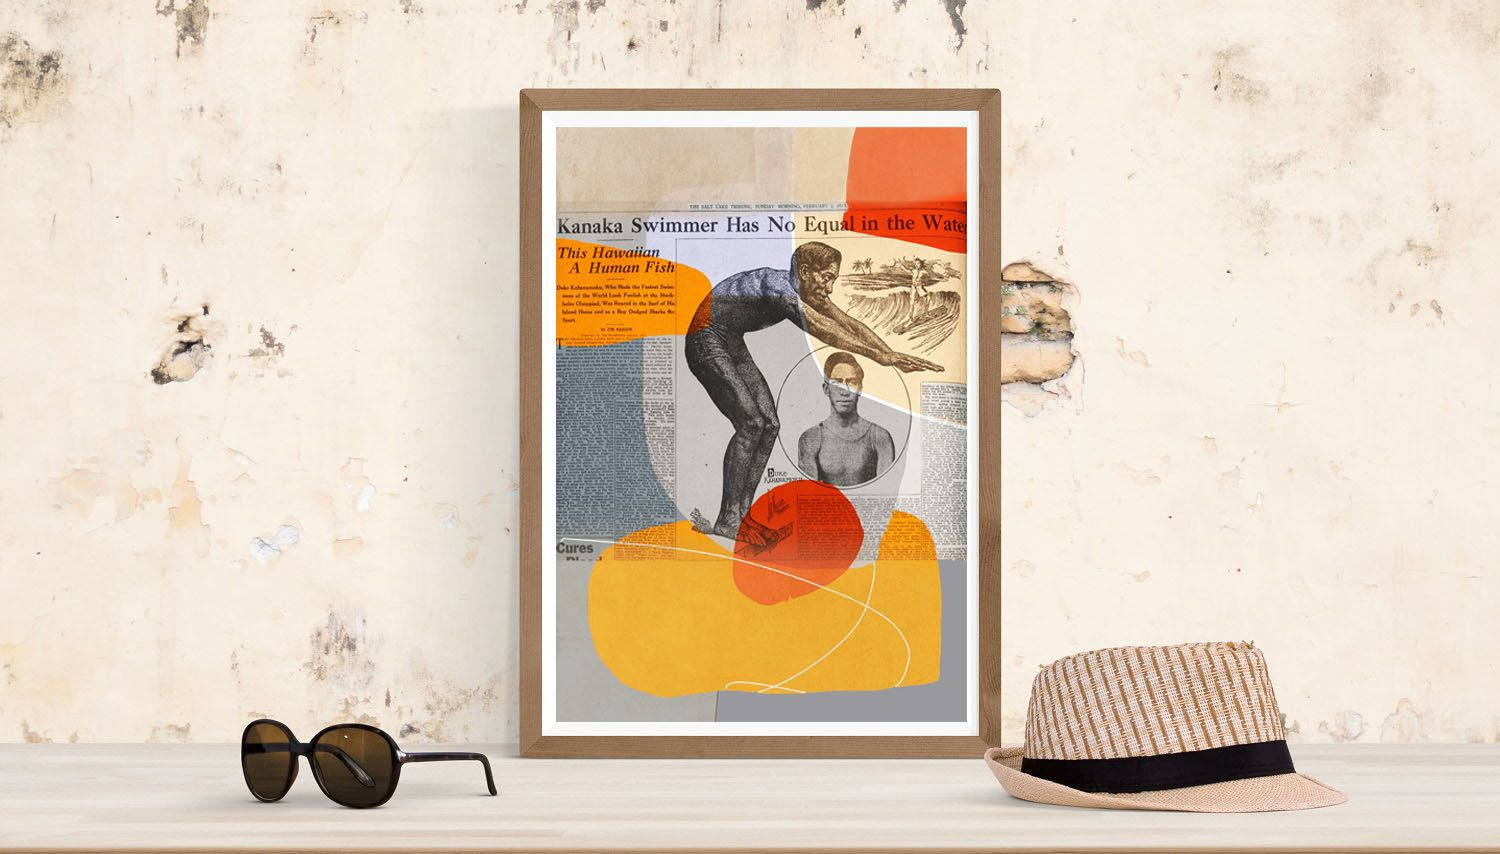 Newspaper Art - Instant Download - Duke Kahanamoku #DownloadNewspaper #NewspaperWallArt #DownloadArt #NewspaperPrint #PrintableNewspaper #NewspaperArticle #DukeKahanamoku #NewspaperArtPrint #NewspaperPoster #NewspaperArt